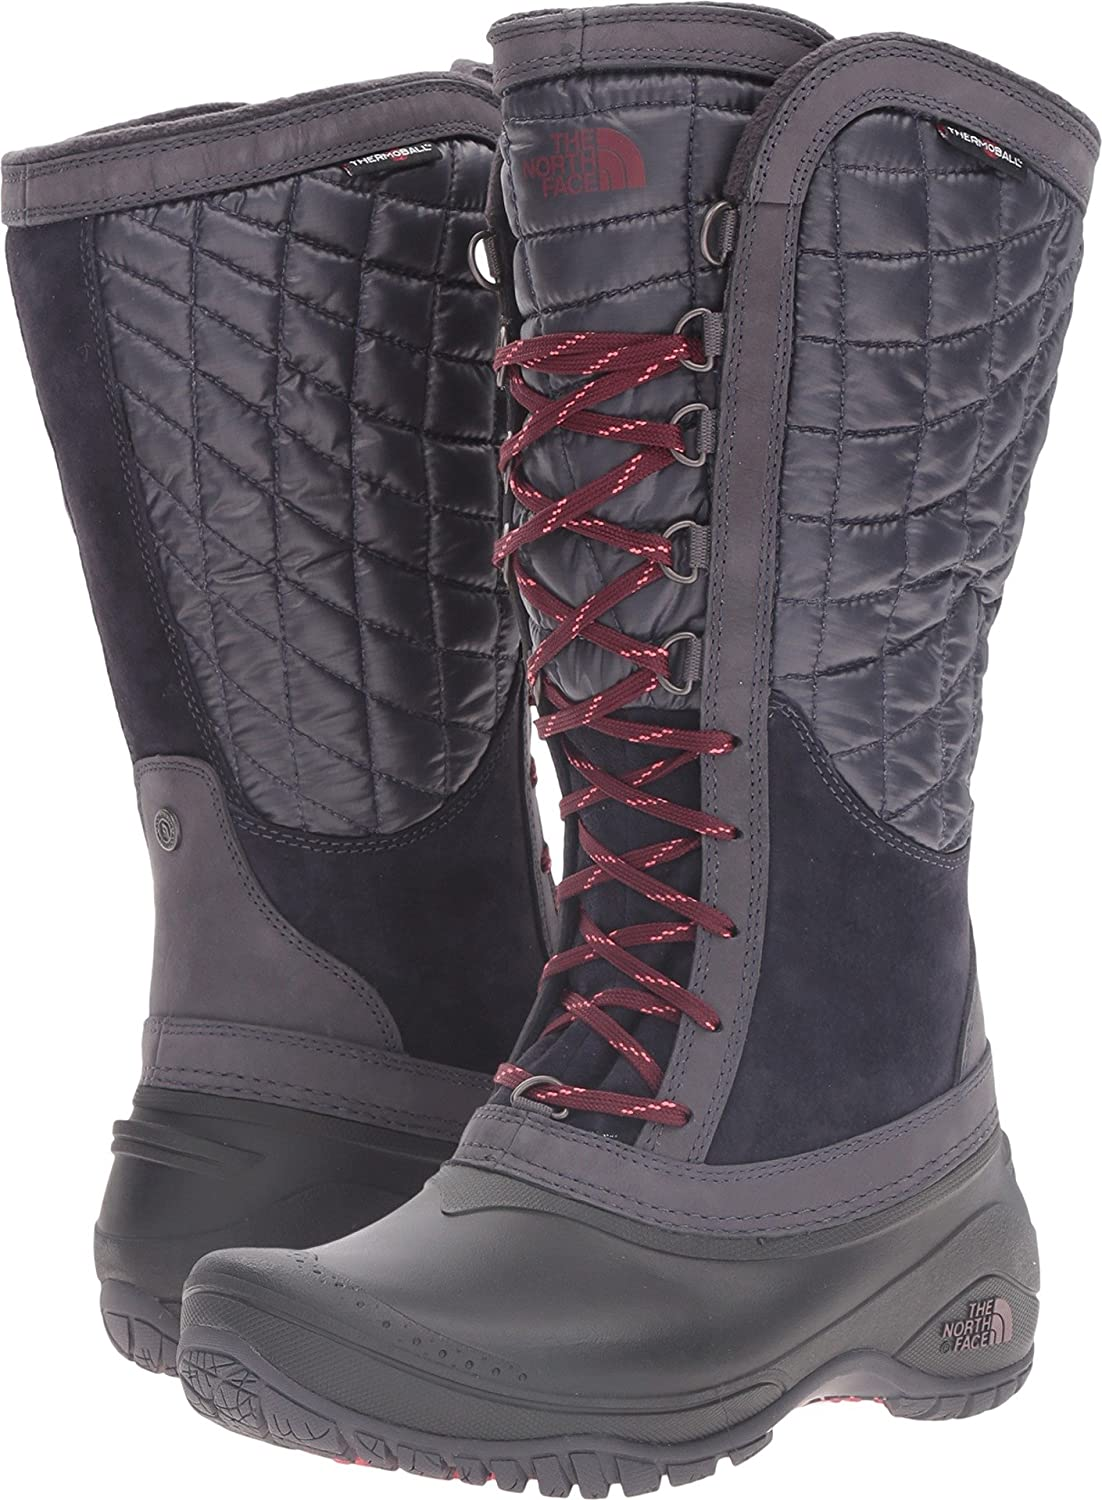 The North Face Thermoball Utility Boot Women's B018WTBSNI 9 B(M) US|Nine Iron Grey/Calypso Coral